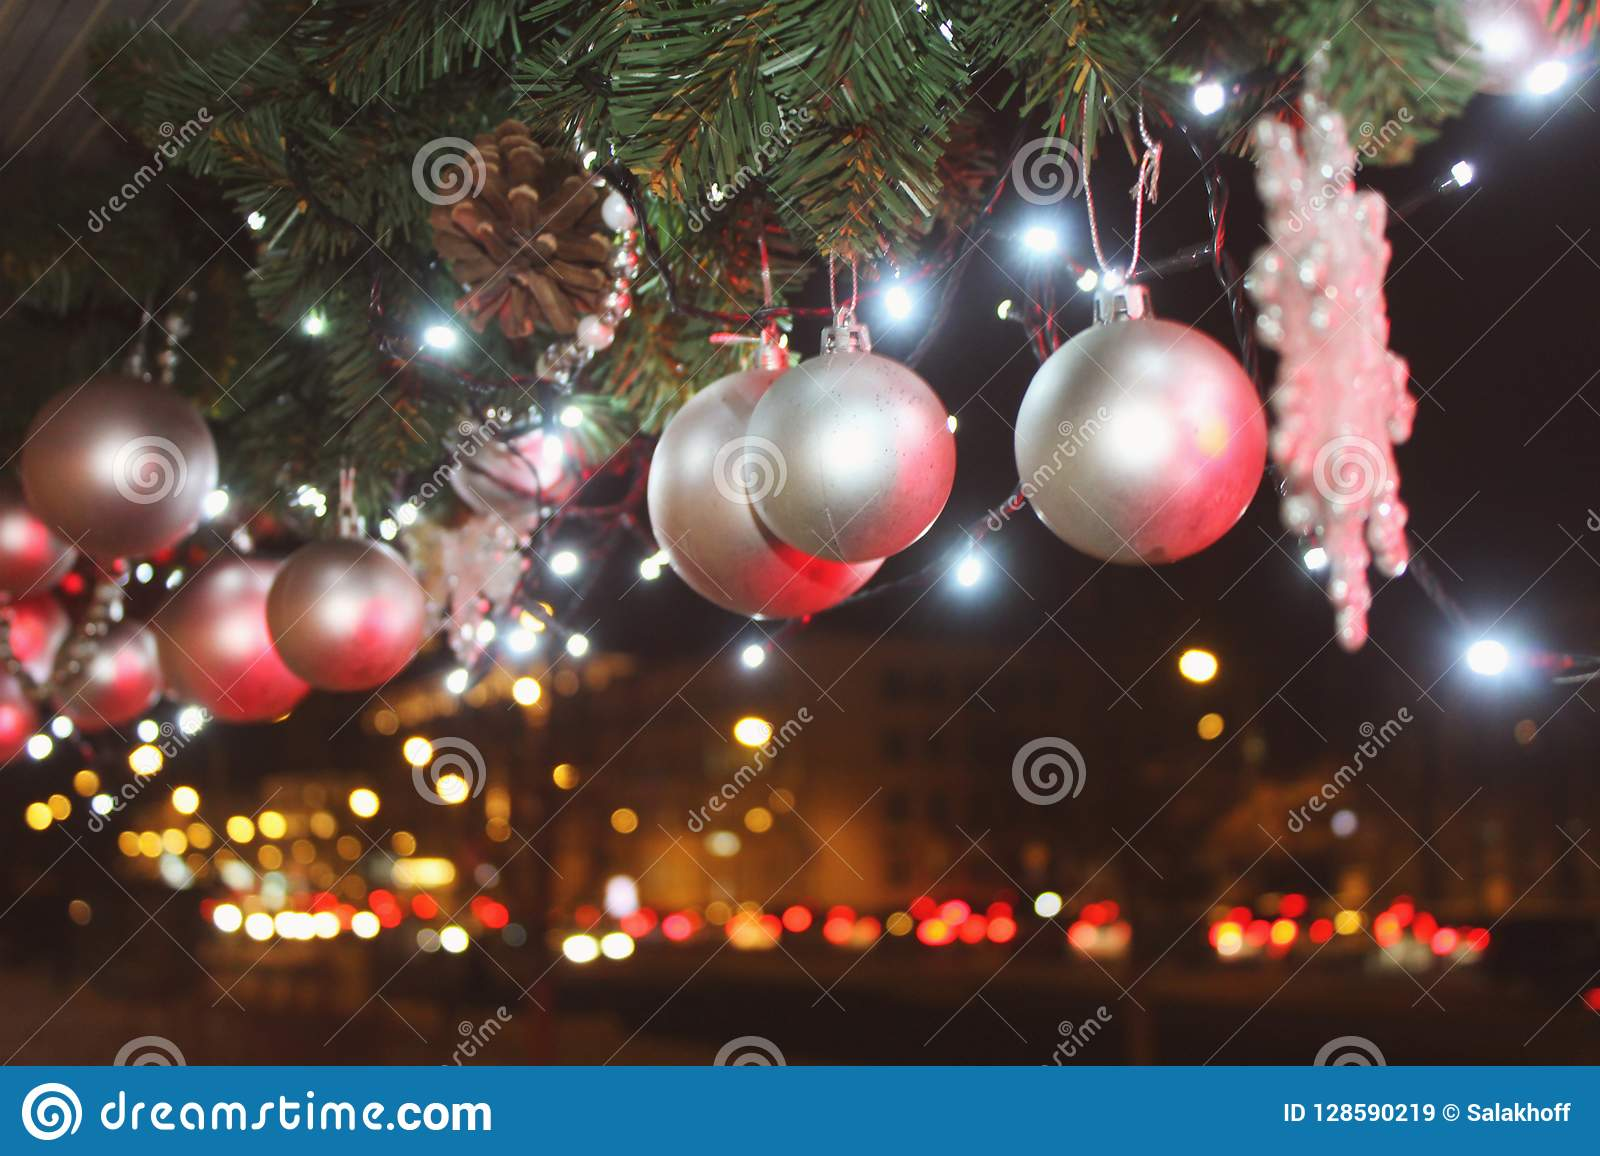 Christmas decoration with a silver toy in the form of balls on the blurry background of night city lights.